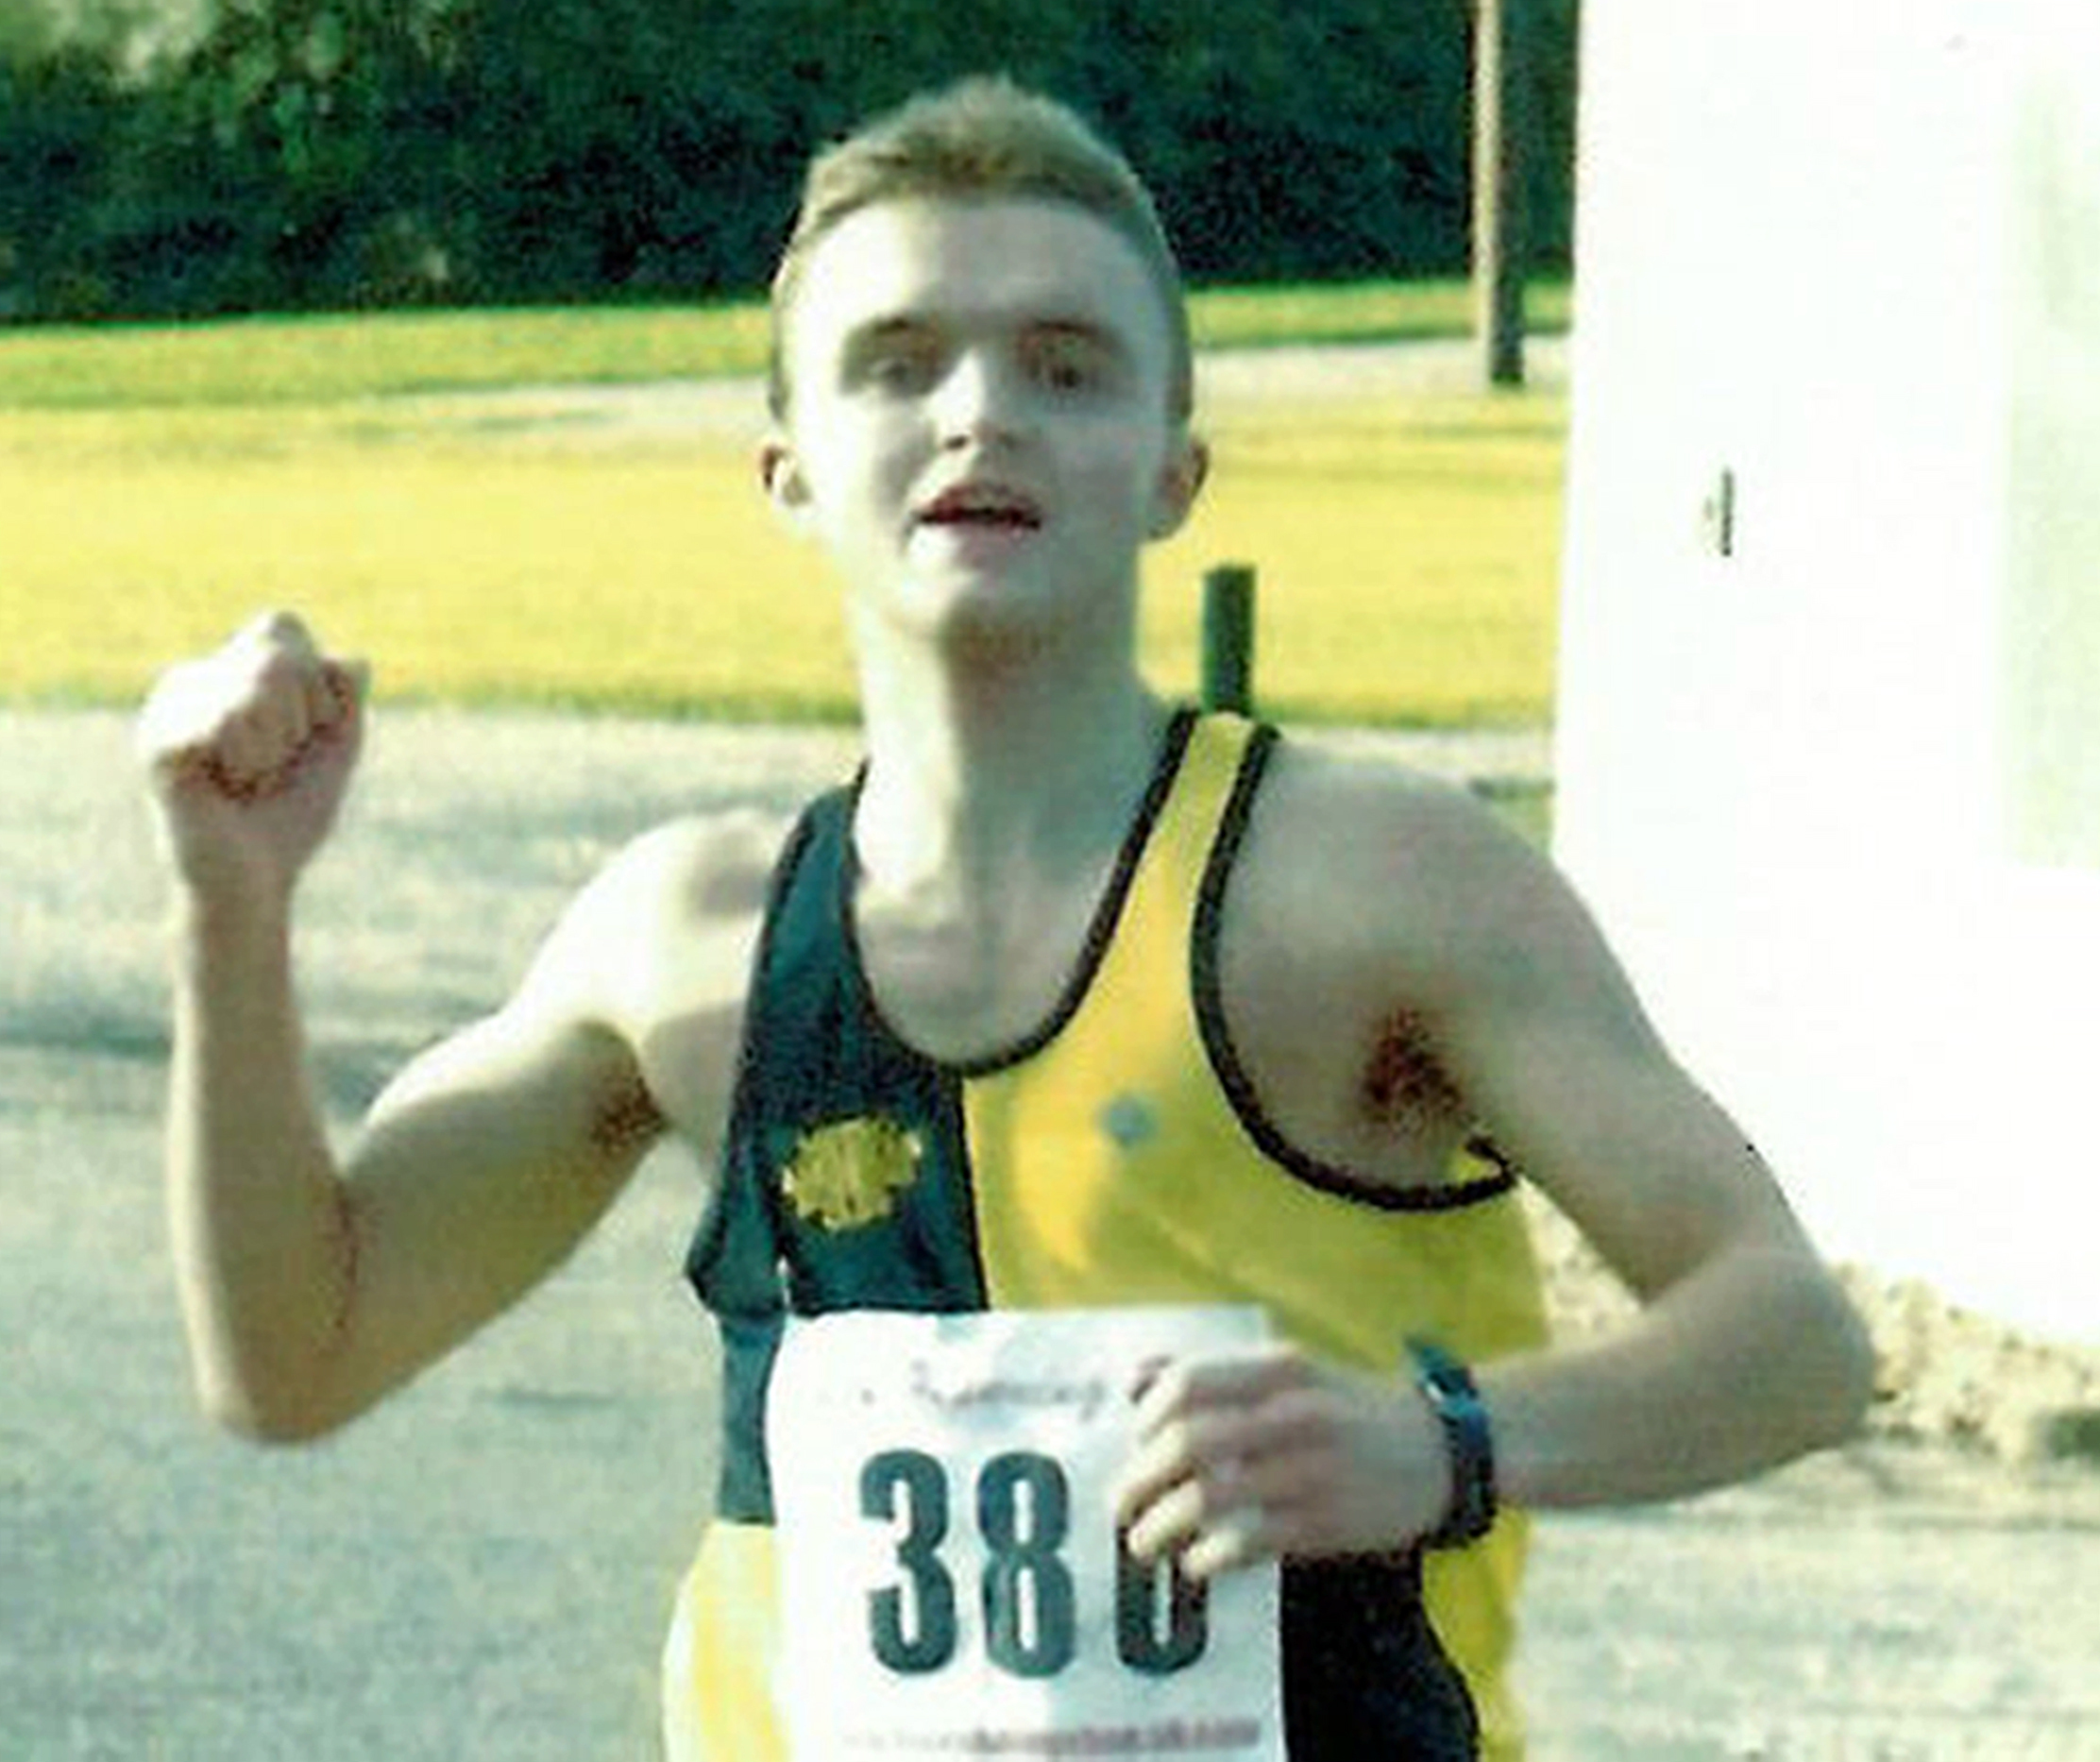 Neil Jaffrey, who  was a well-known figure in the running scene around the North-east, died from a head injury.